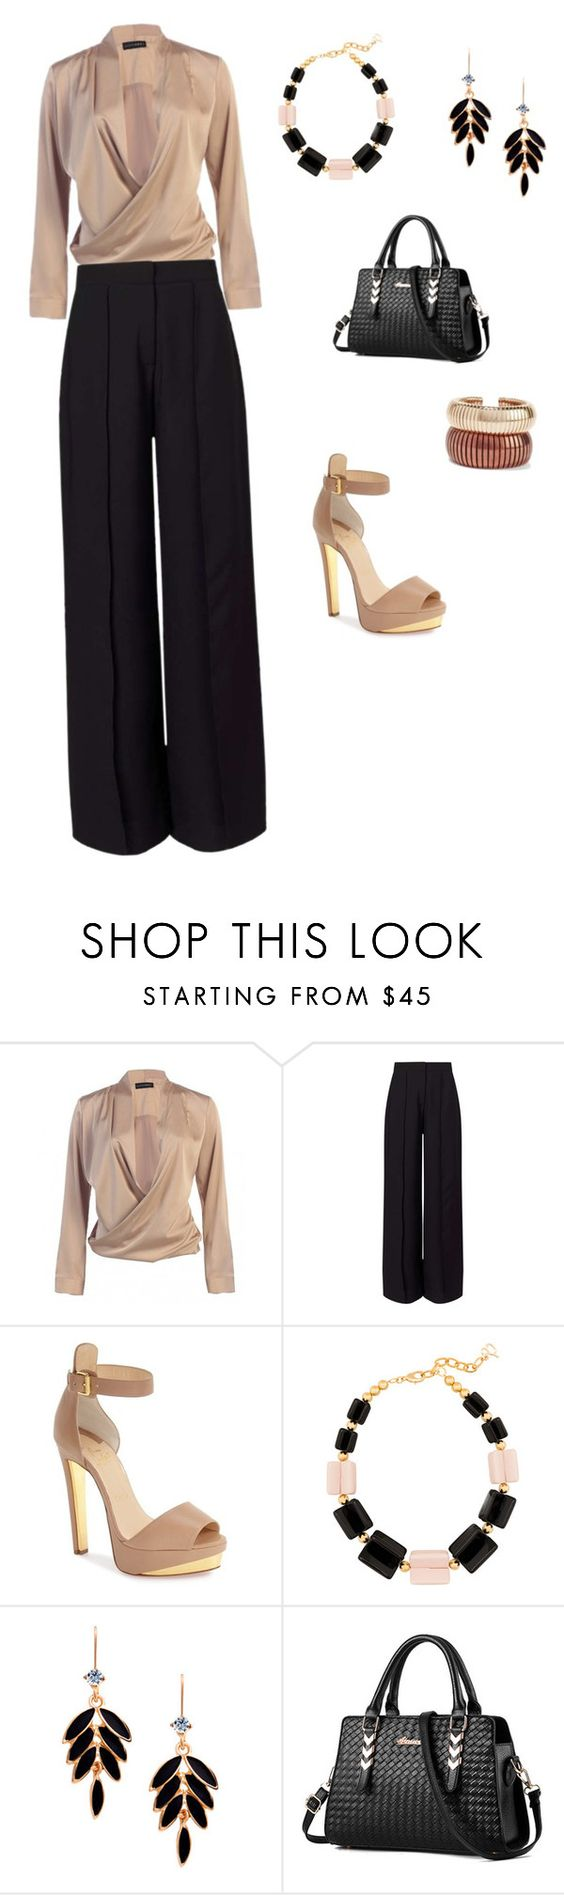 """Untitled #8"" by gabbylara ❤ liked on Polyvore featuring Miss Selfridge, Christian Louboutin, DIANA BROUSSARD and Rosantica"